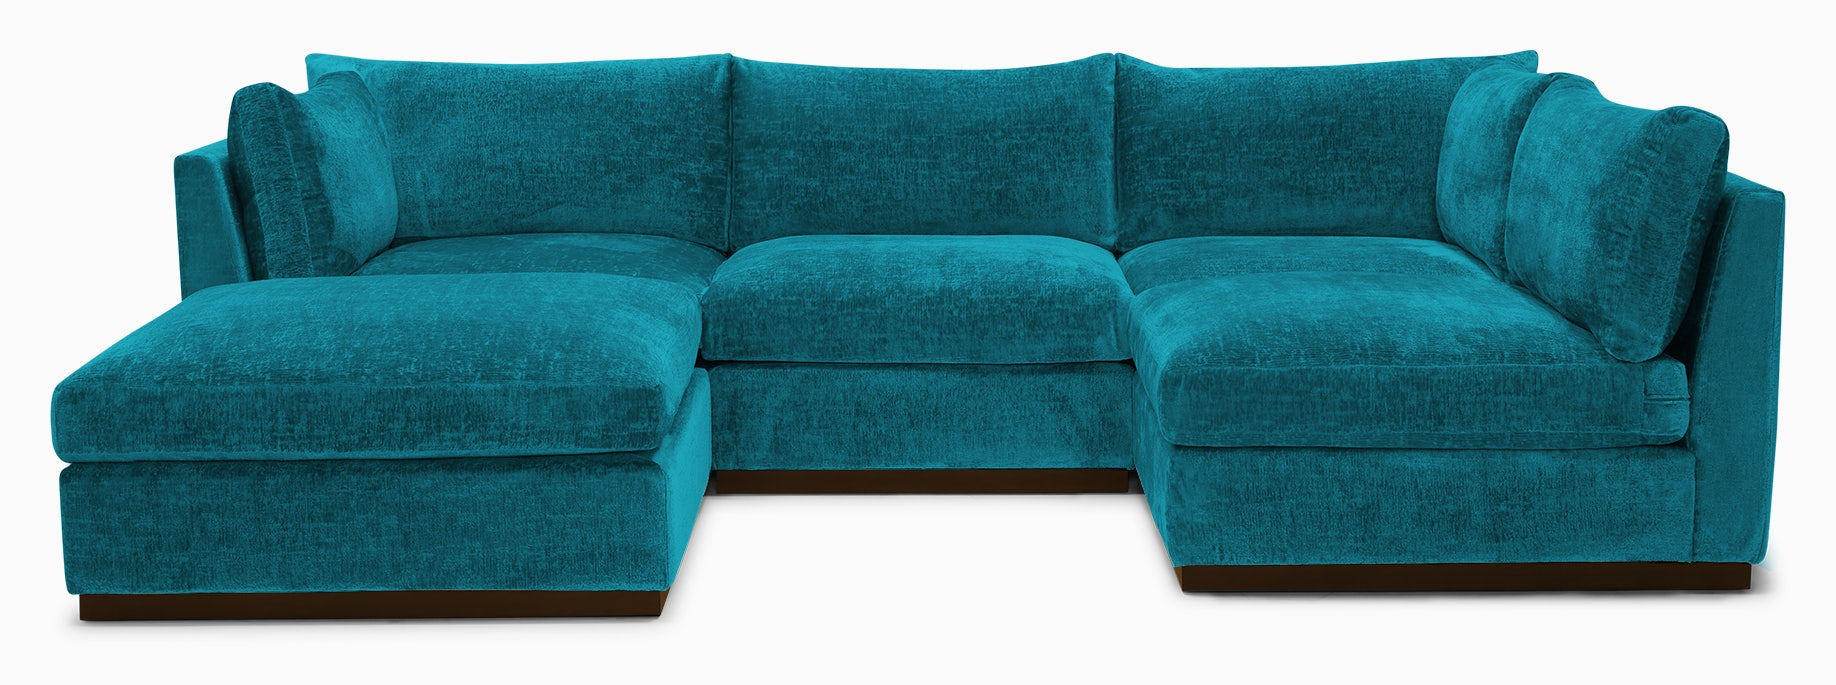 holt armless sofa sectional %285 piece%29 vibe aquatic